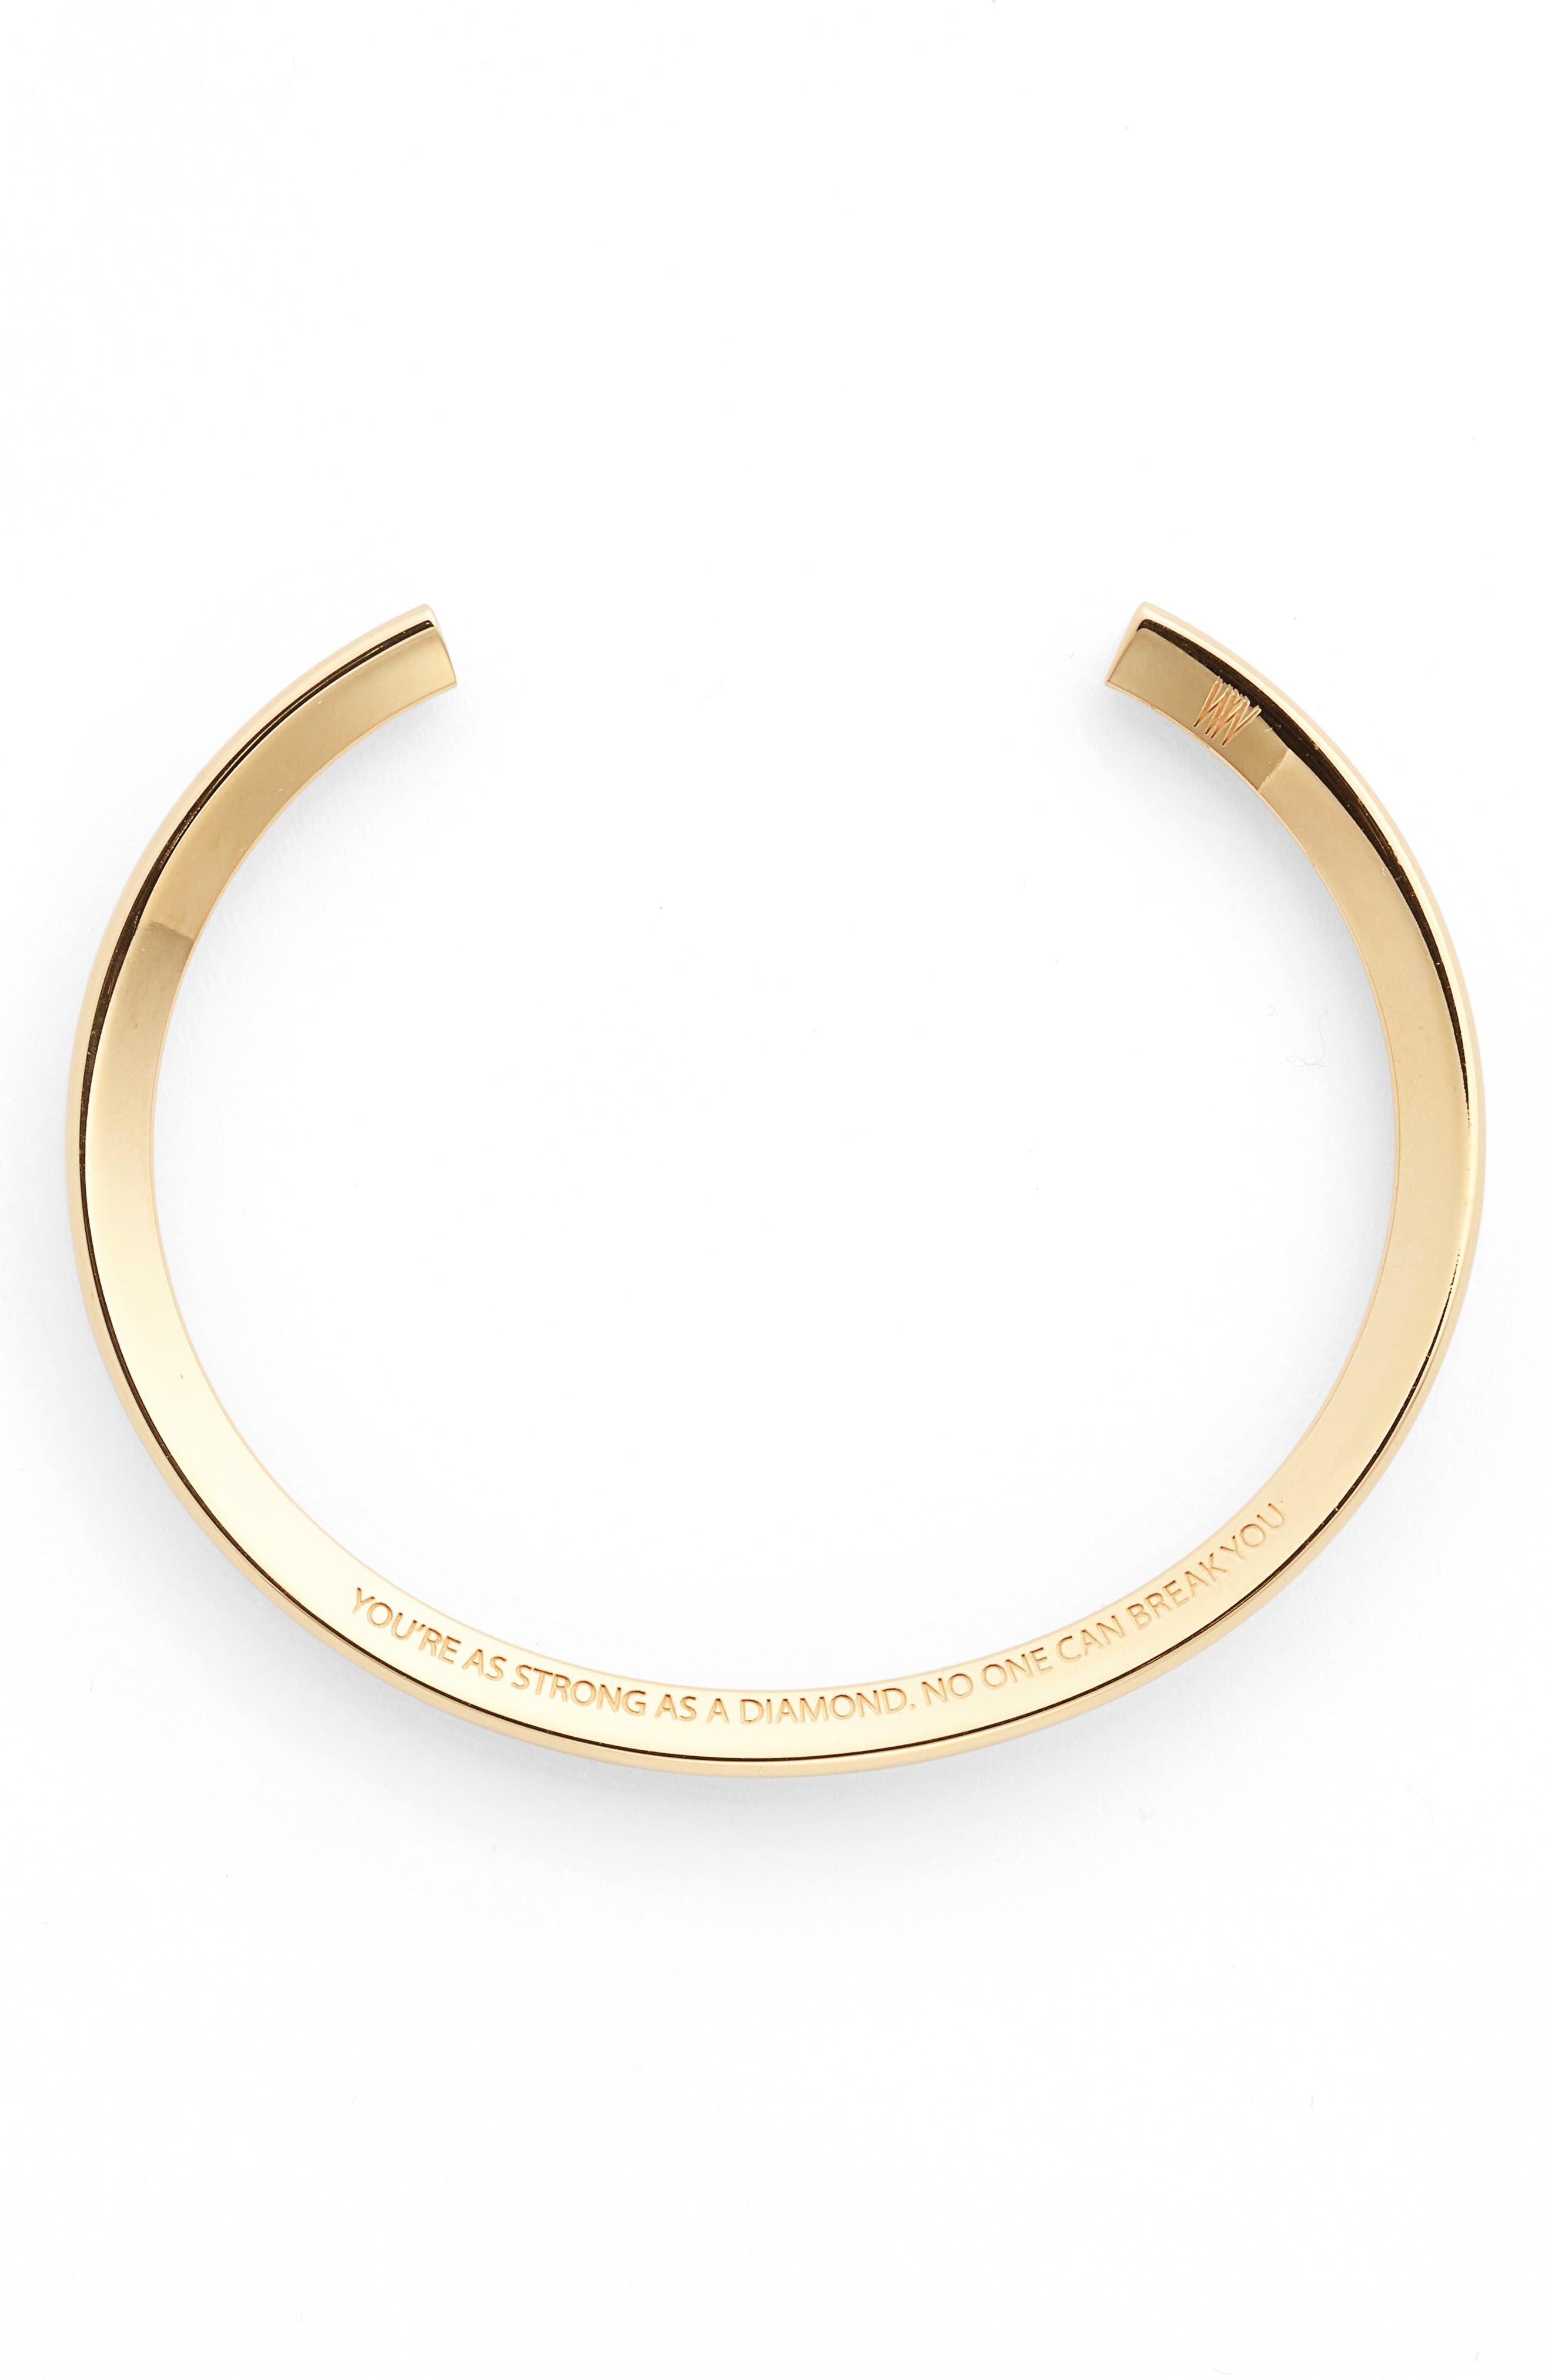 Main Image - Stella Valle You're as Strong as a Diamond Cuff